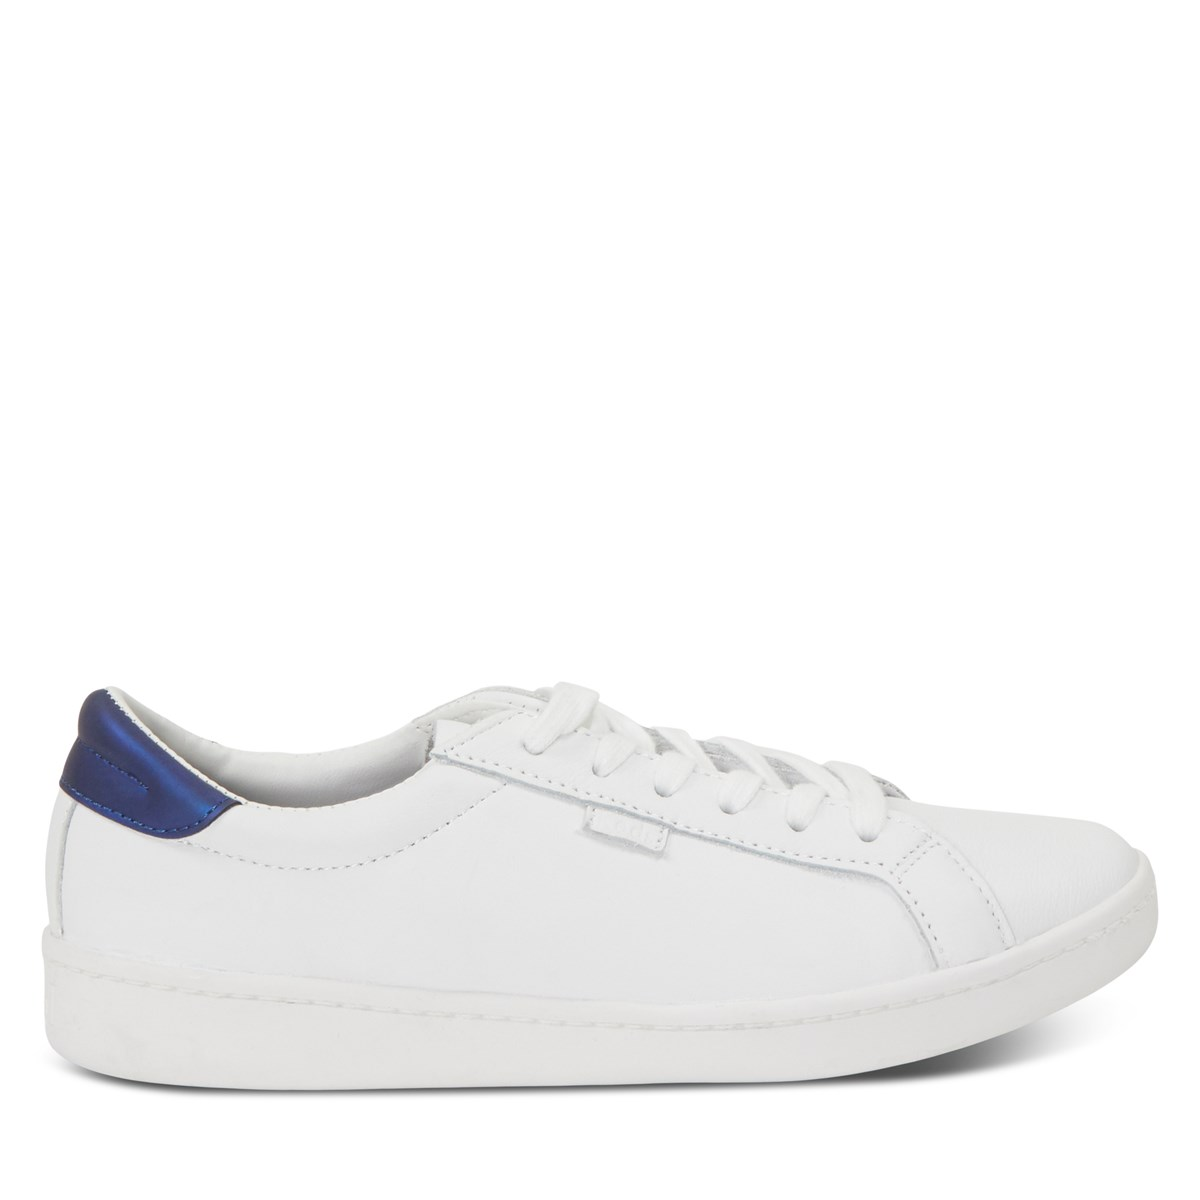 Women's Ace Sneakers in White